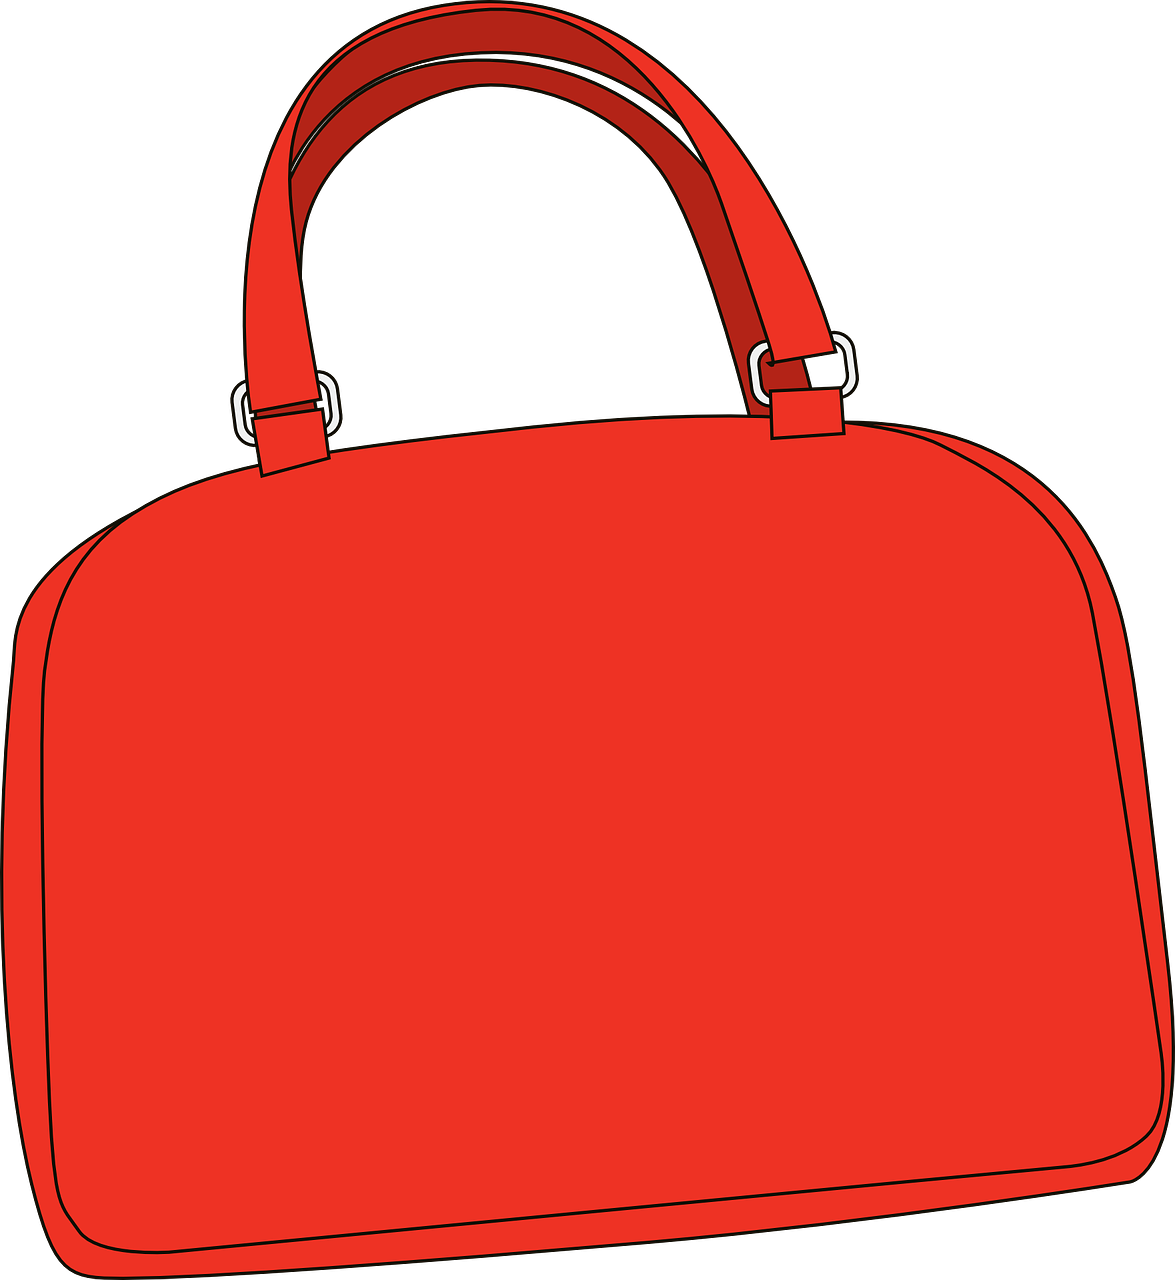 handbag purse red free photo